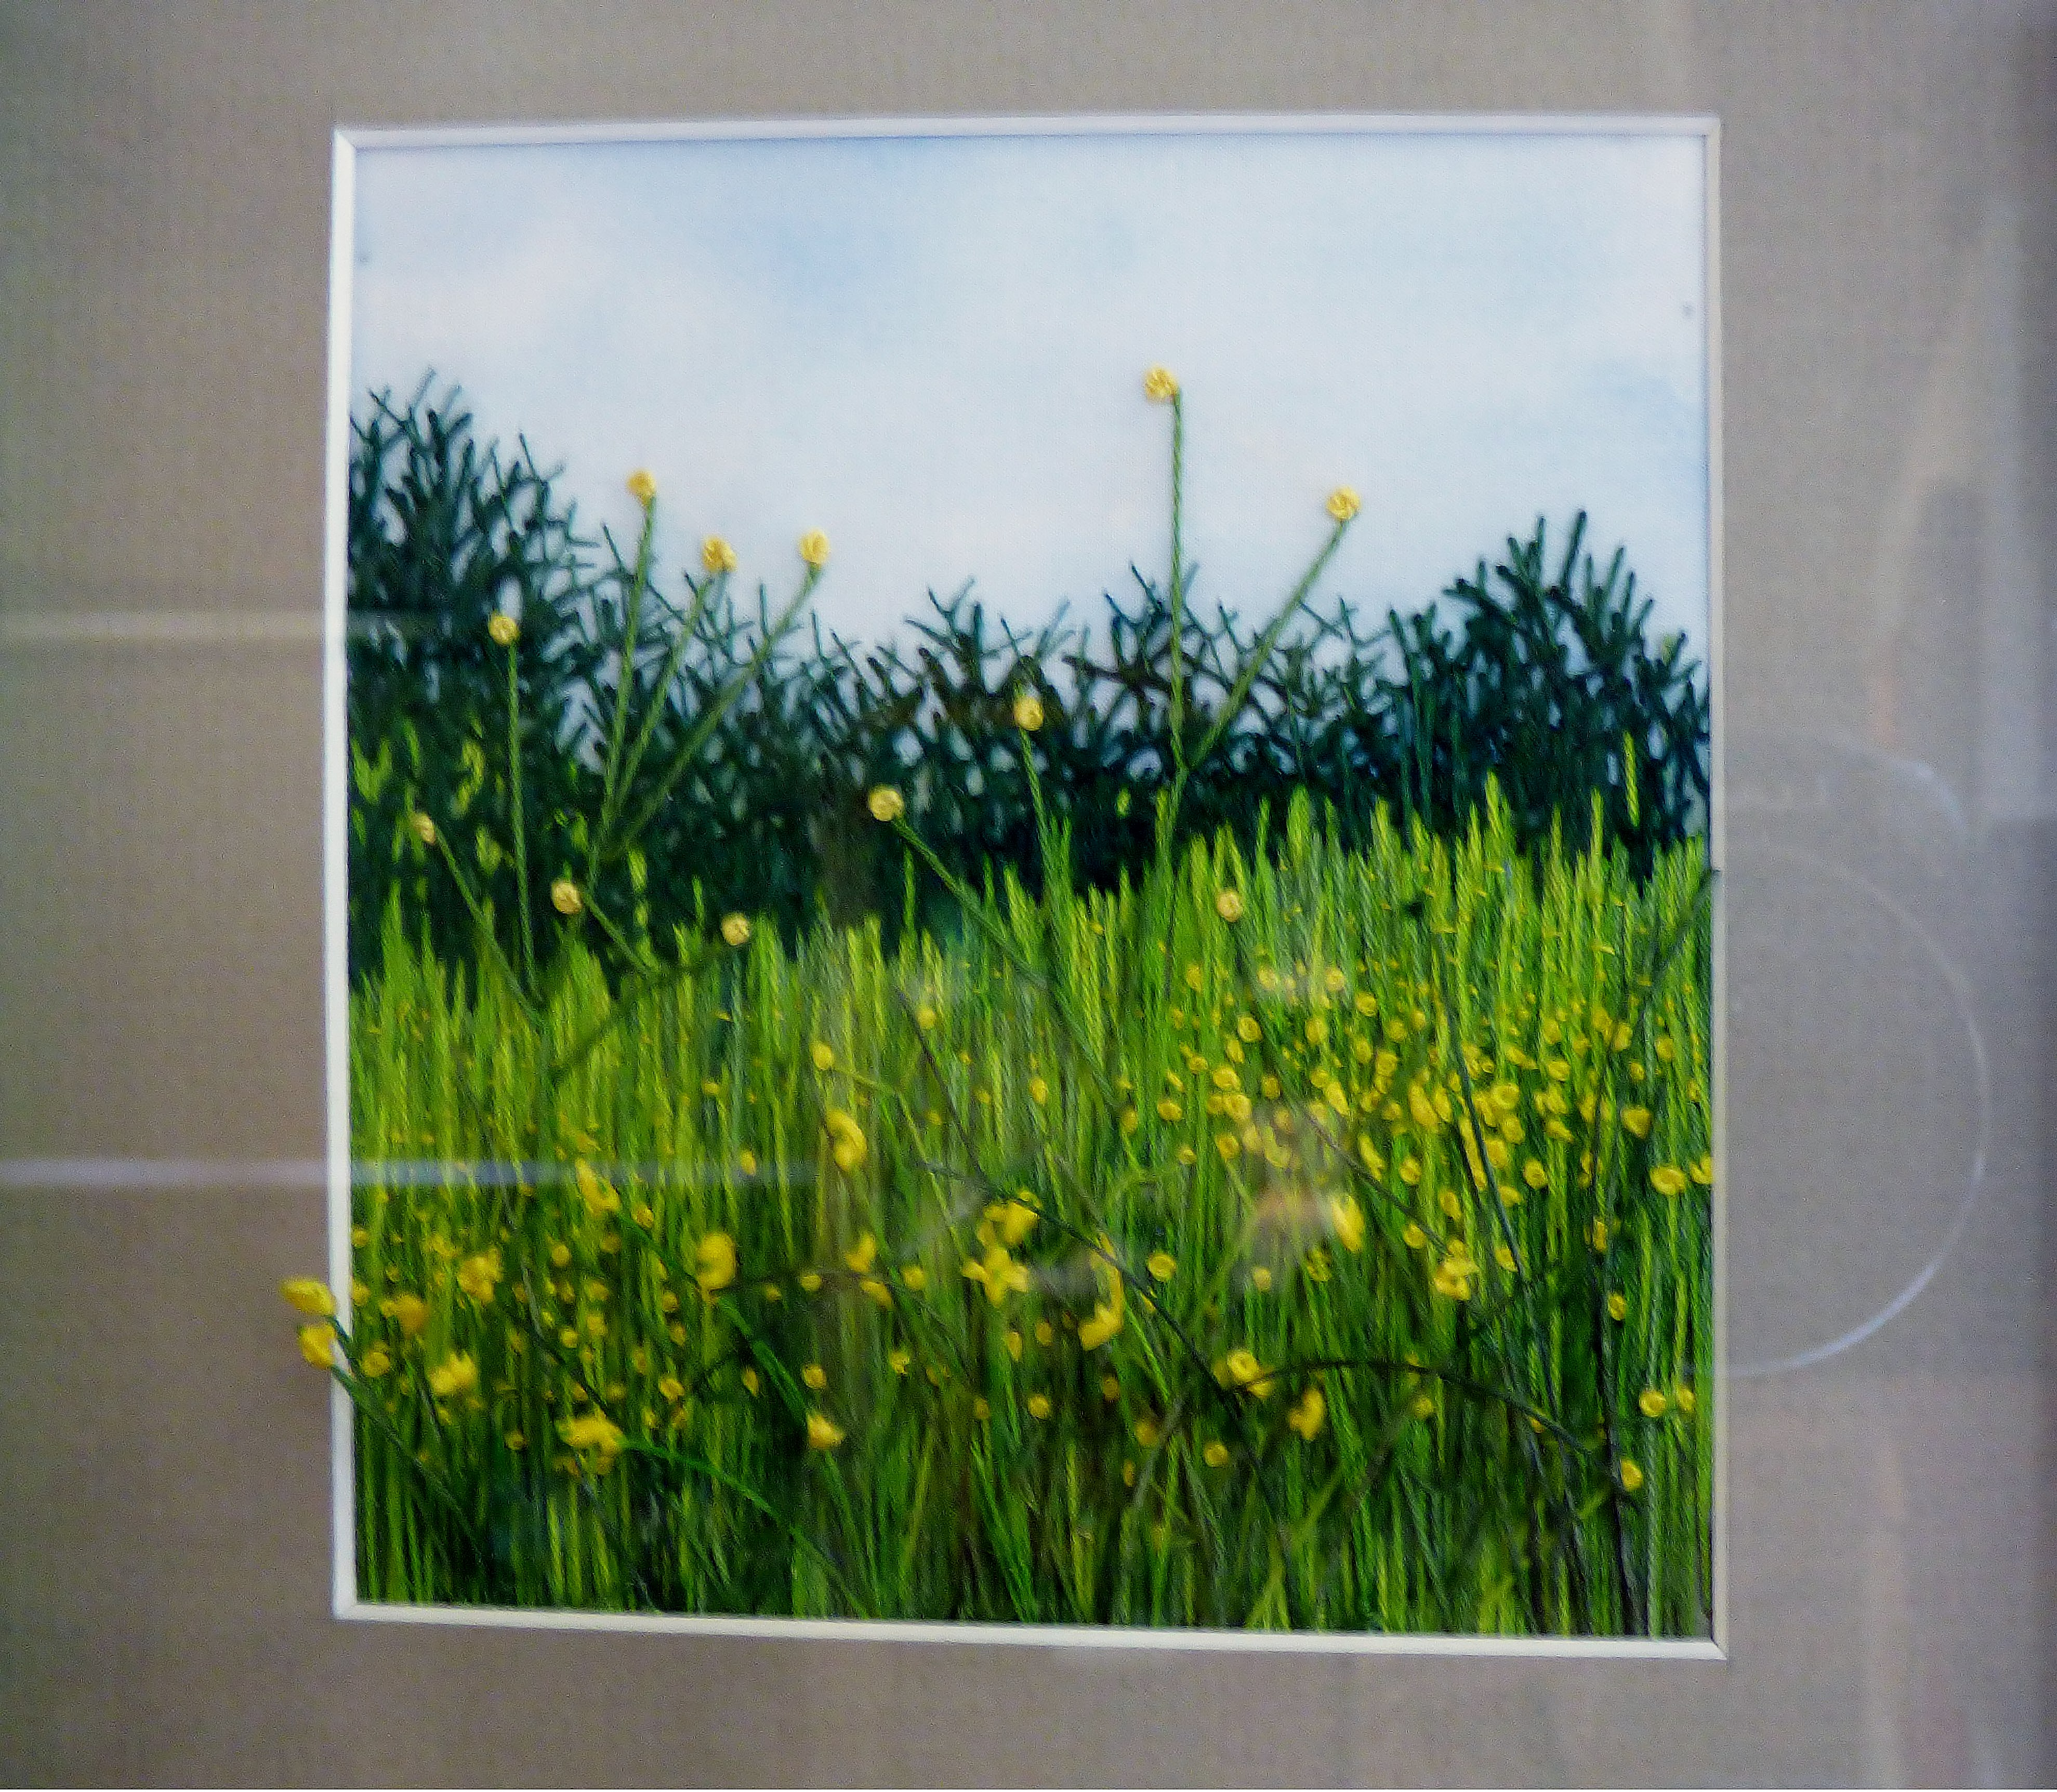 DANDELIONS by Rita Kurzwell, free style embroidery